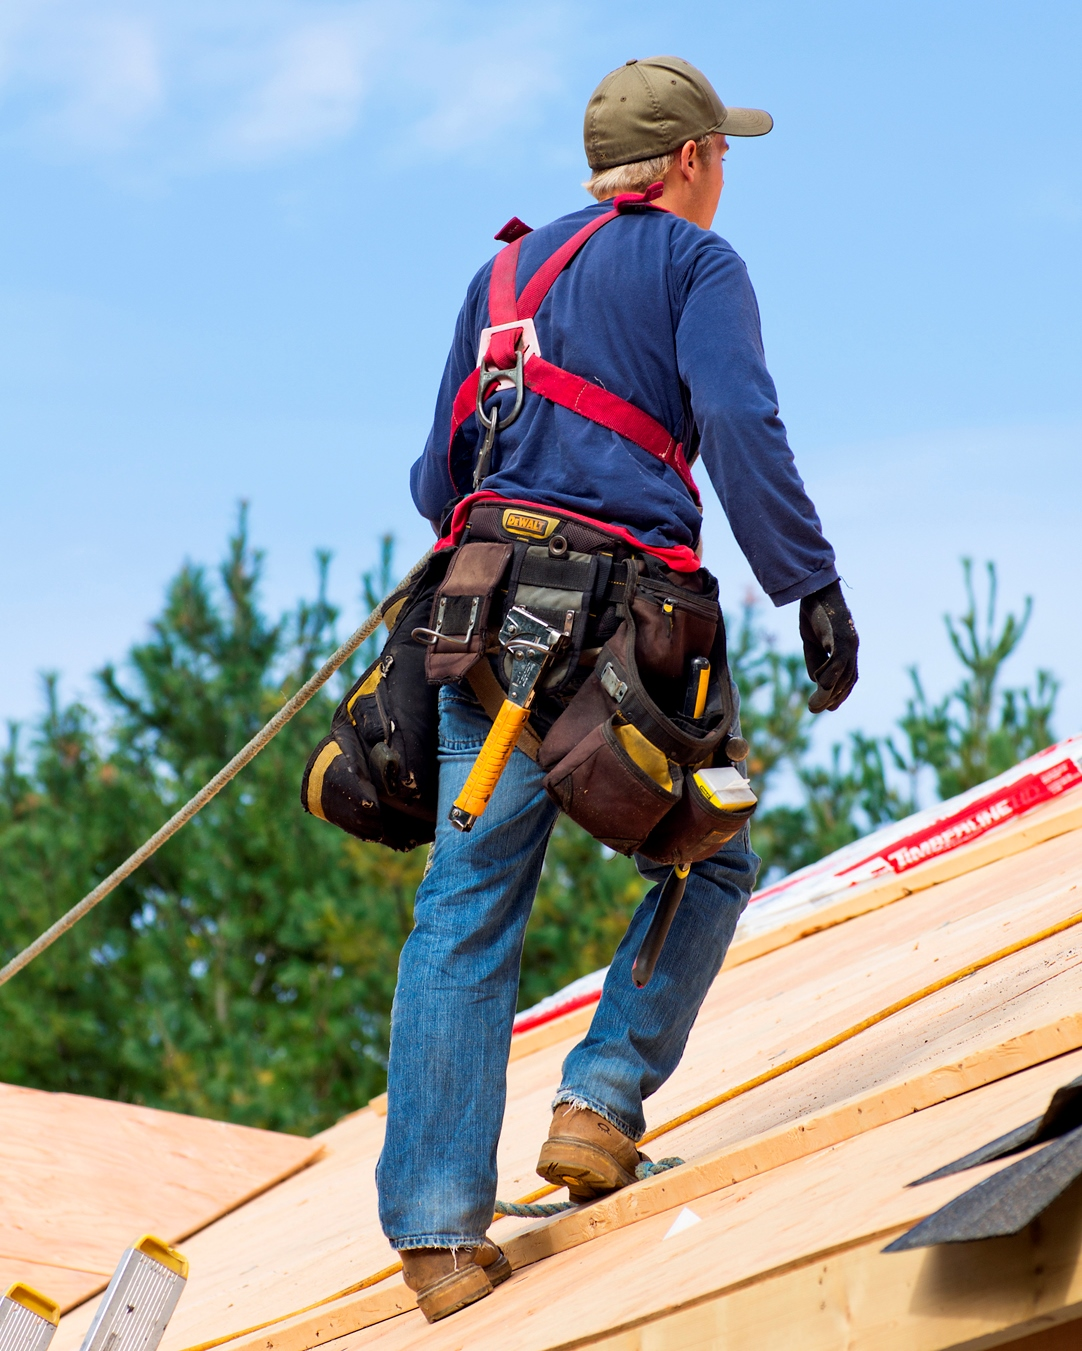 Using A Fall Arrest System And Safety Harness Correctly